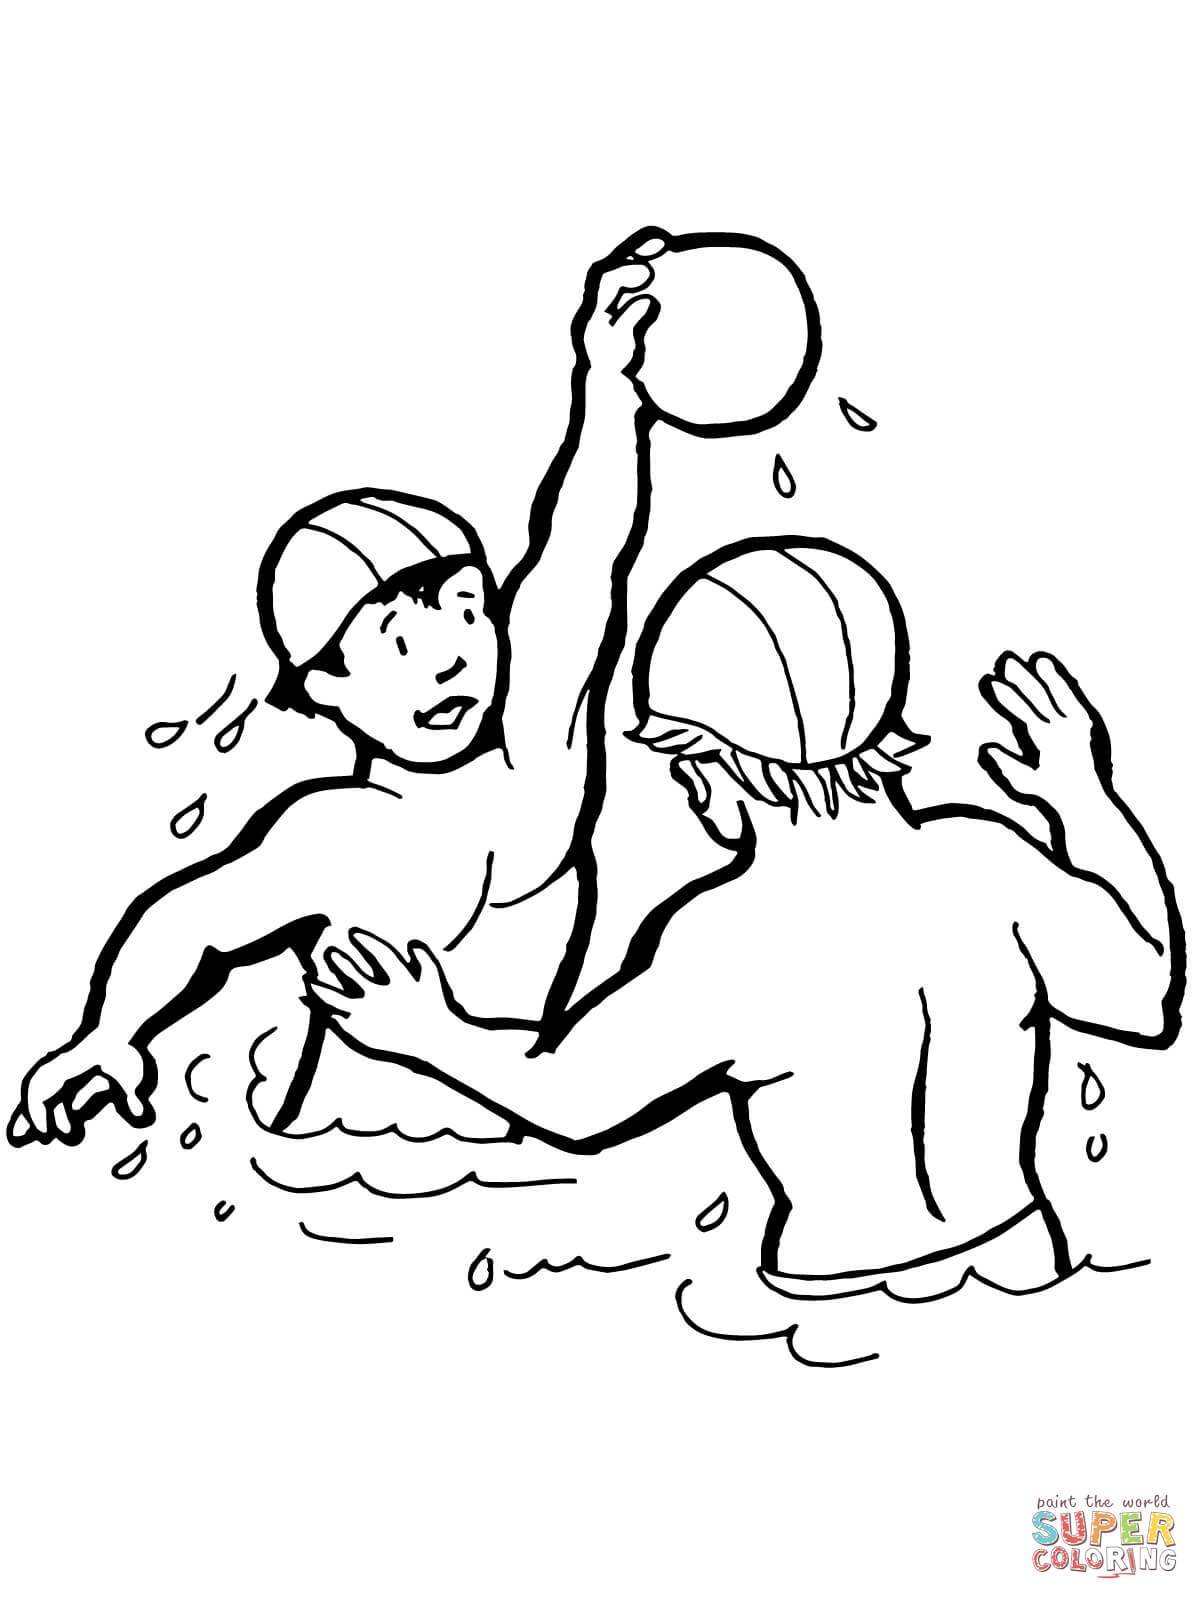 1200x1600 Crazy Swimmer Coloring Page Free Printable Coloring Pages